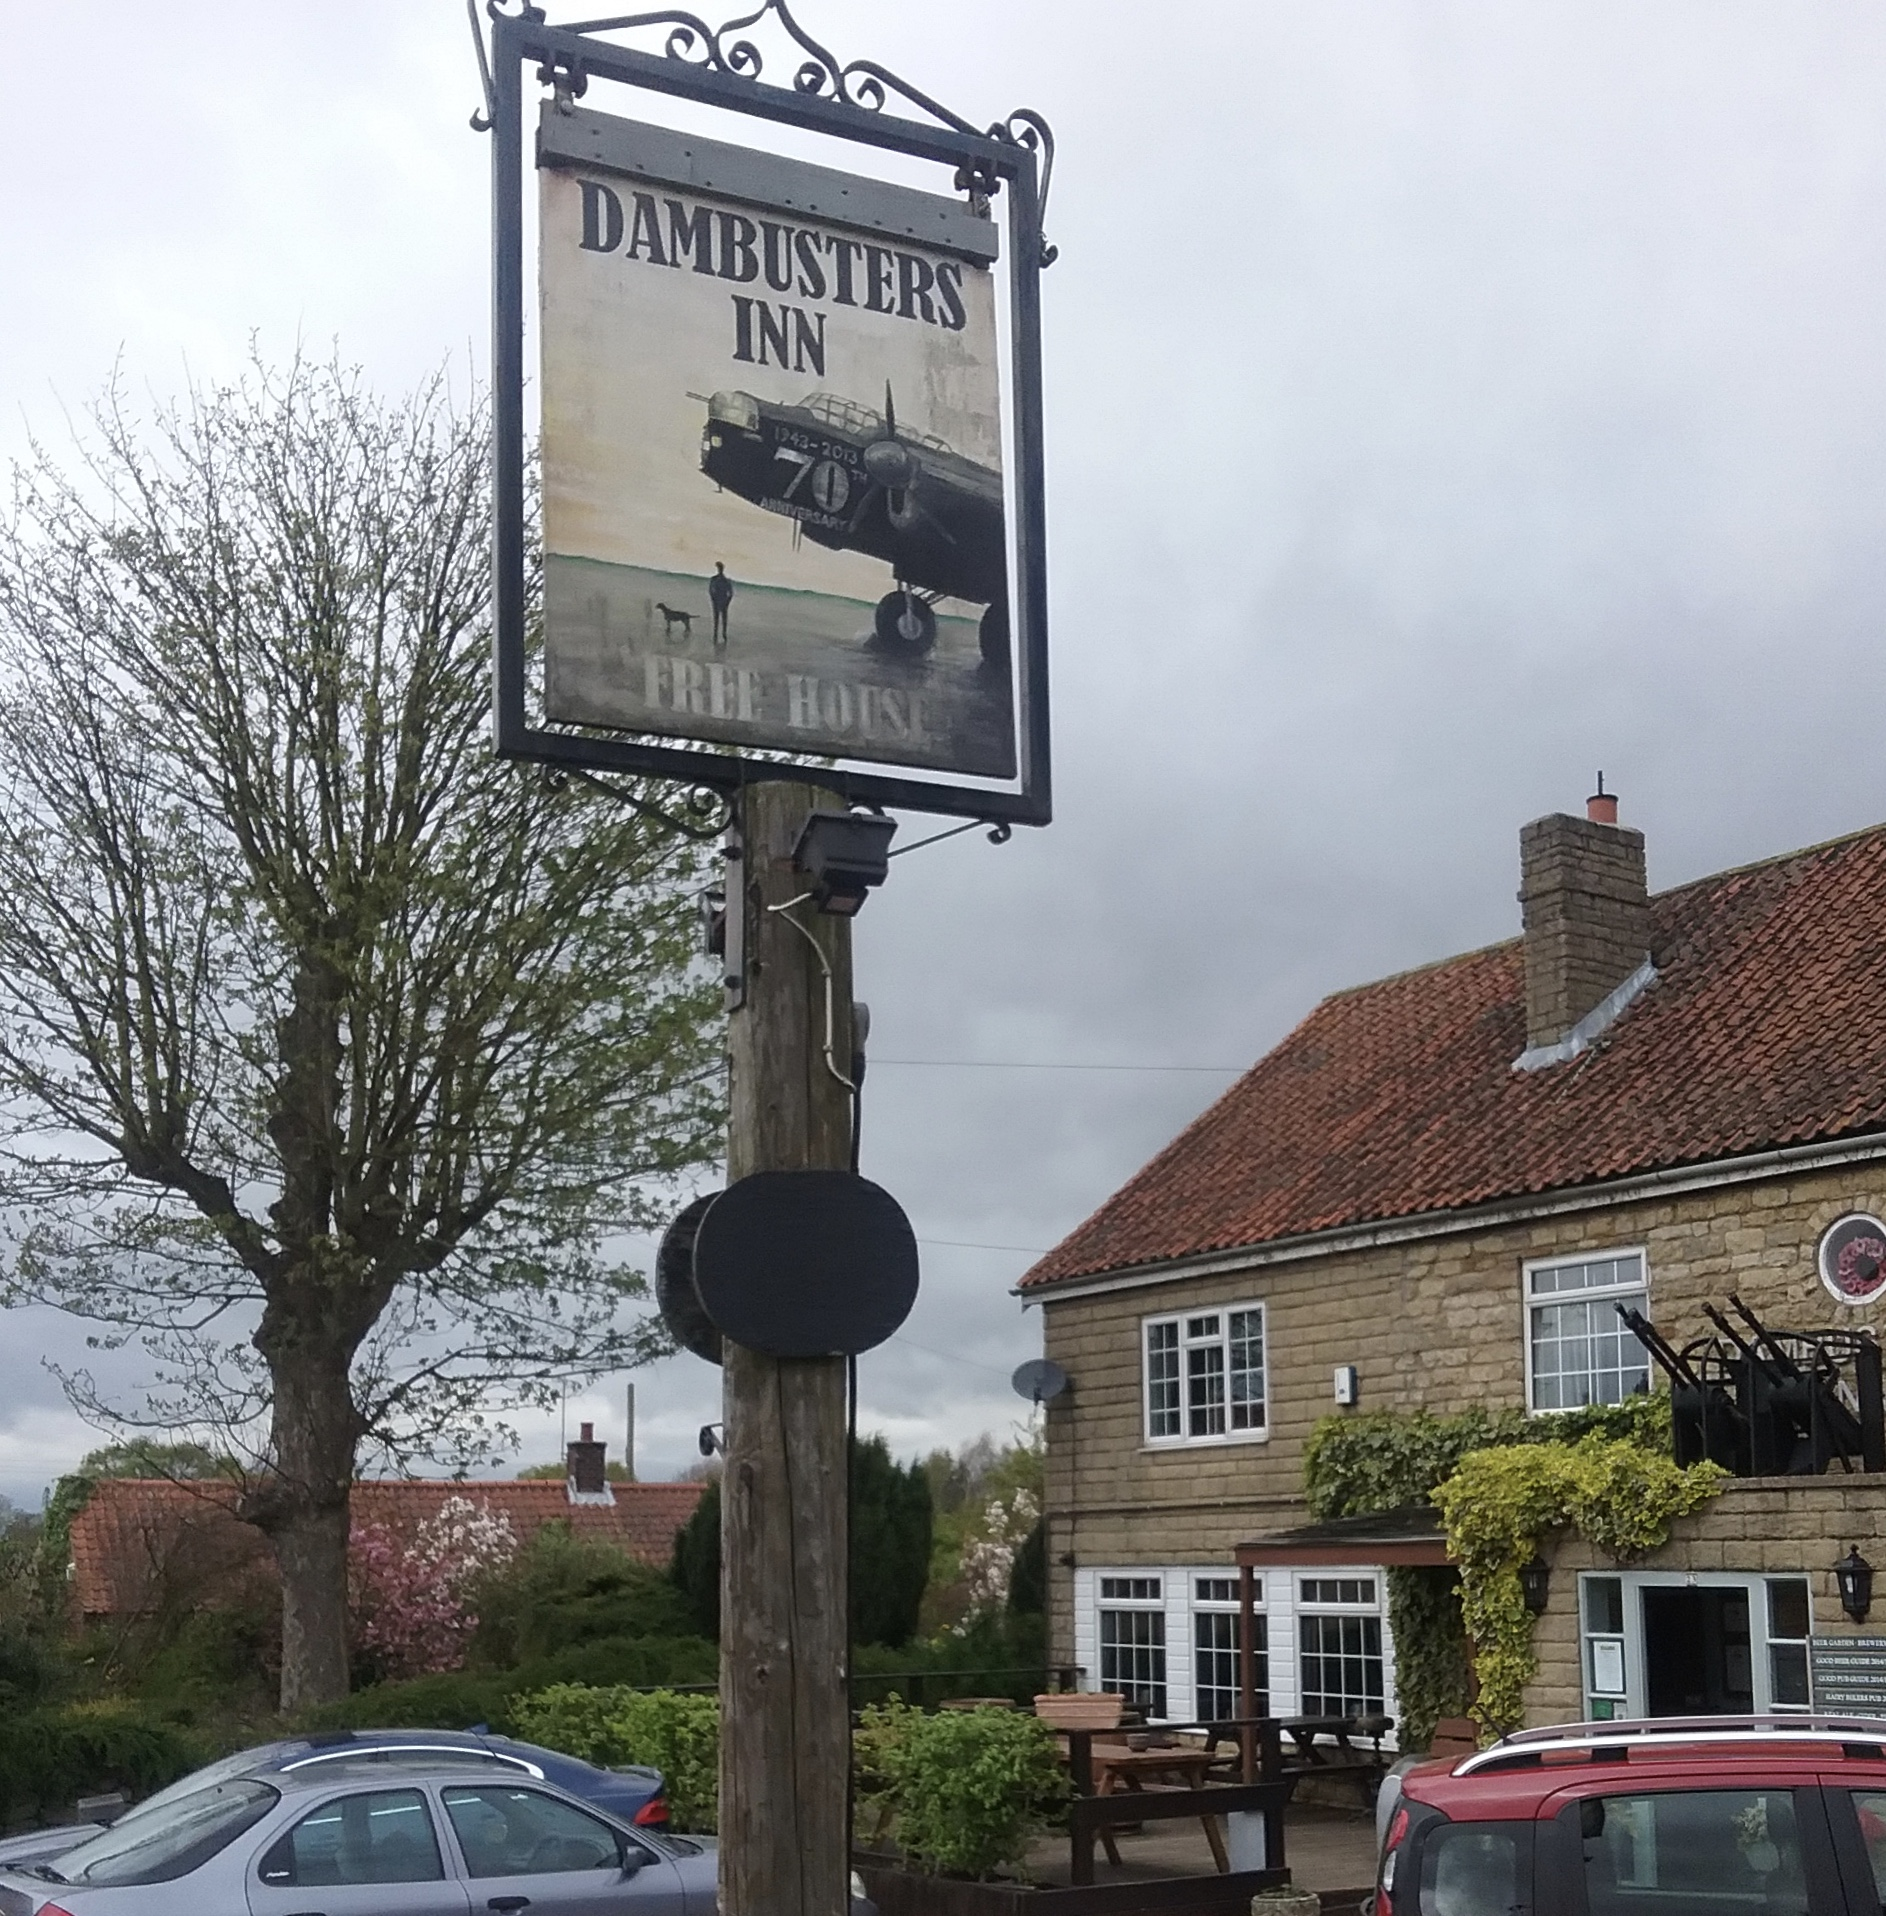 Lincoln pub of 2016 and 2017 (CAMRA) has a link with Harmondsworth in that Barnes Wallis, inventor of the bouncing bomb, had a testing tank in the village and now has a memorial there.